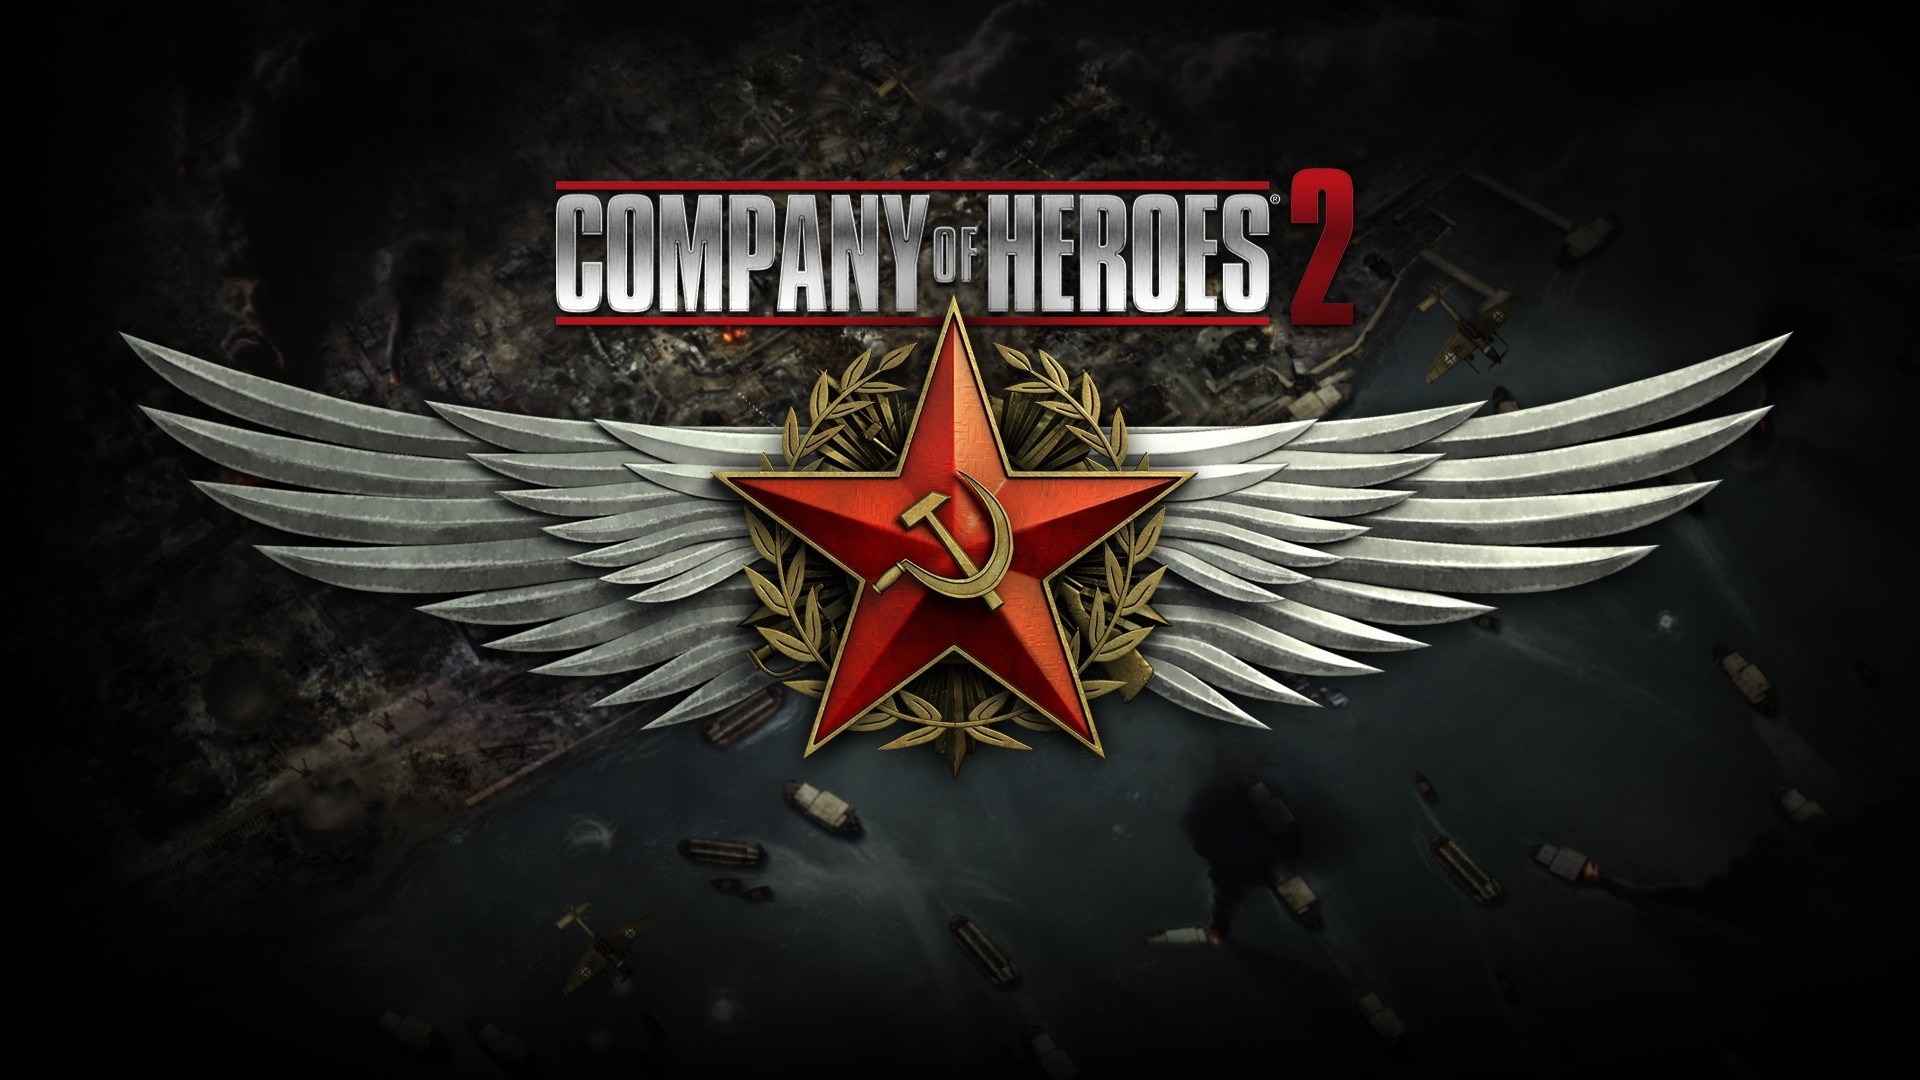 1920x1080-free-computer-for-company-of-heroes-wallpaper-wp380771